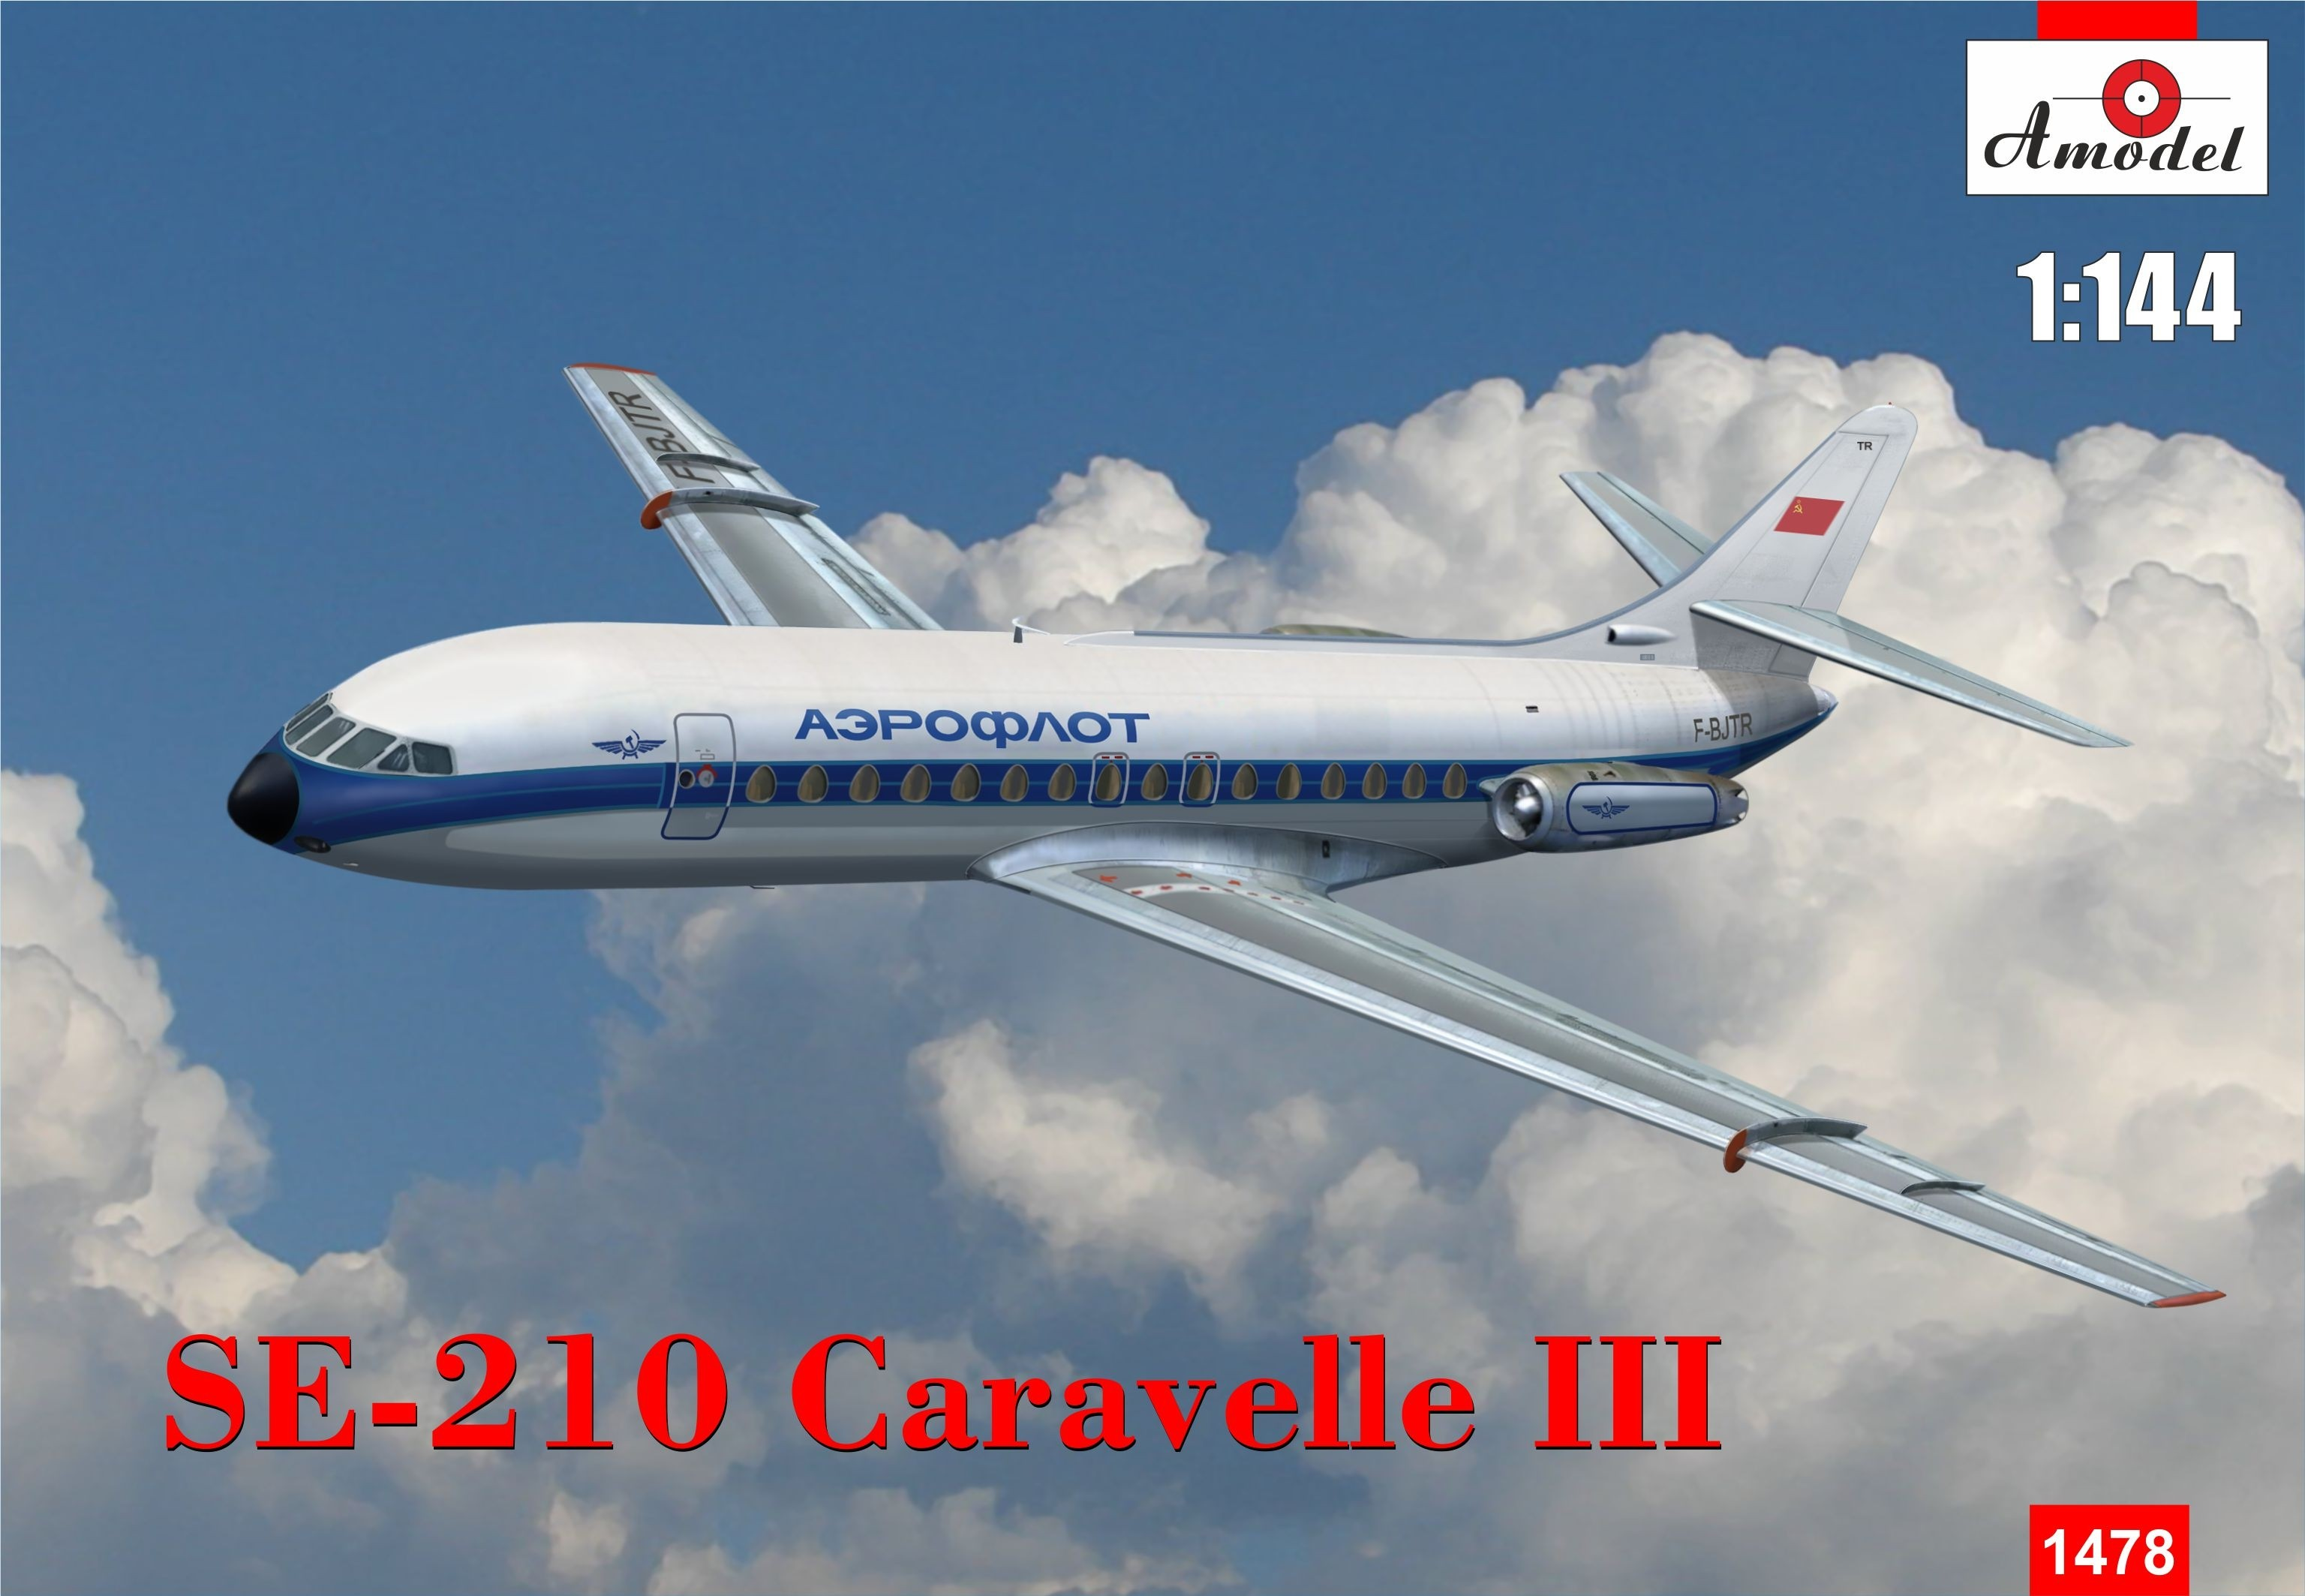 Sud-Aviation Caravelle III